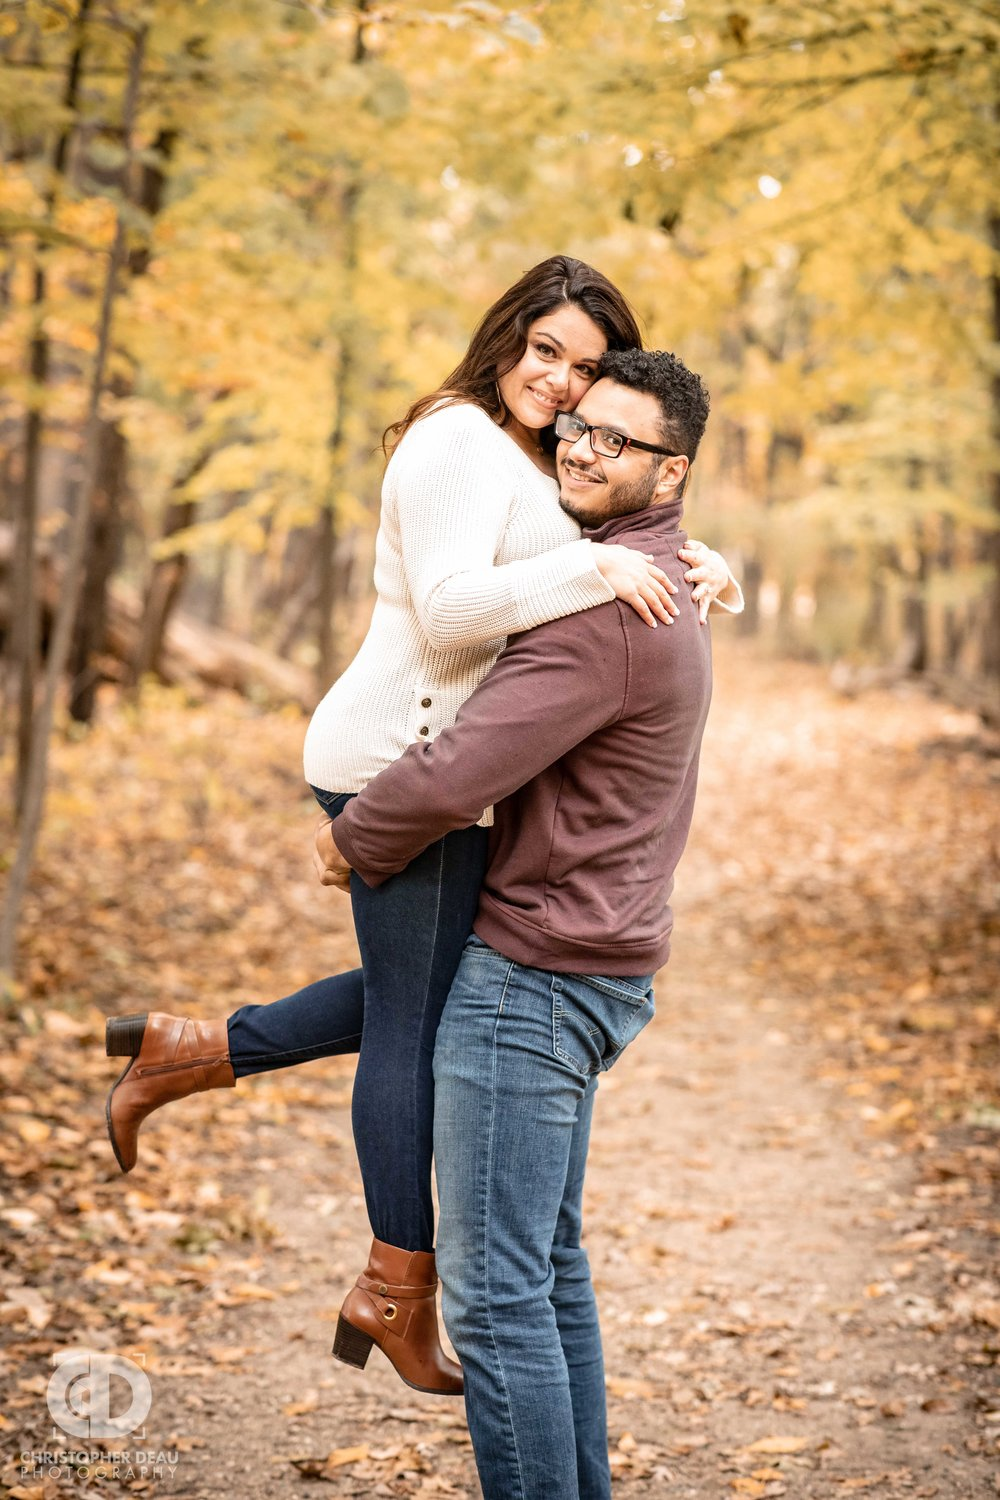 Man lifting woman for fall engagement photos